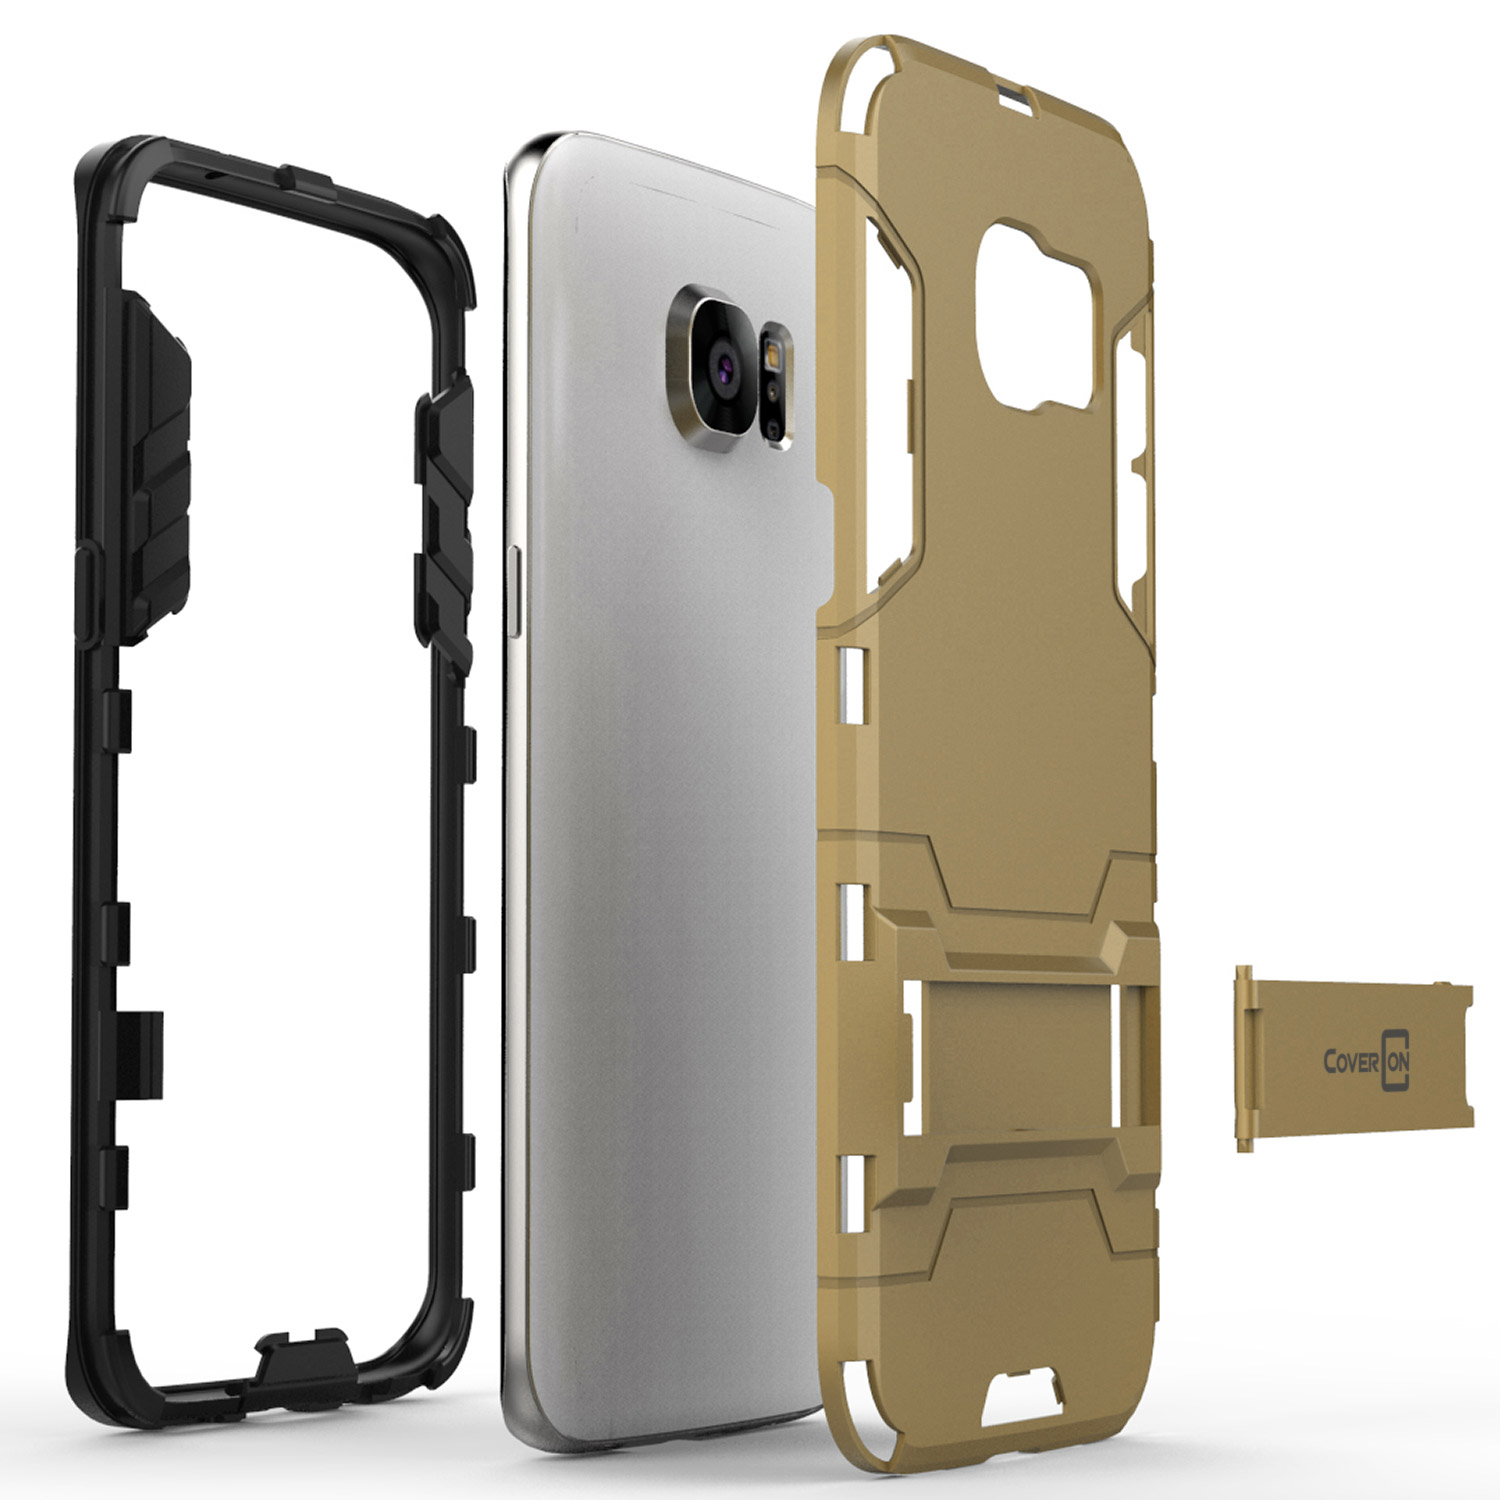 samsung s7 phone case with stand